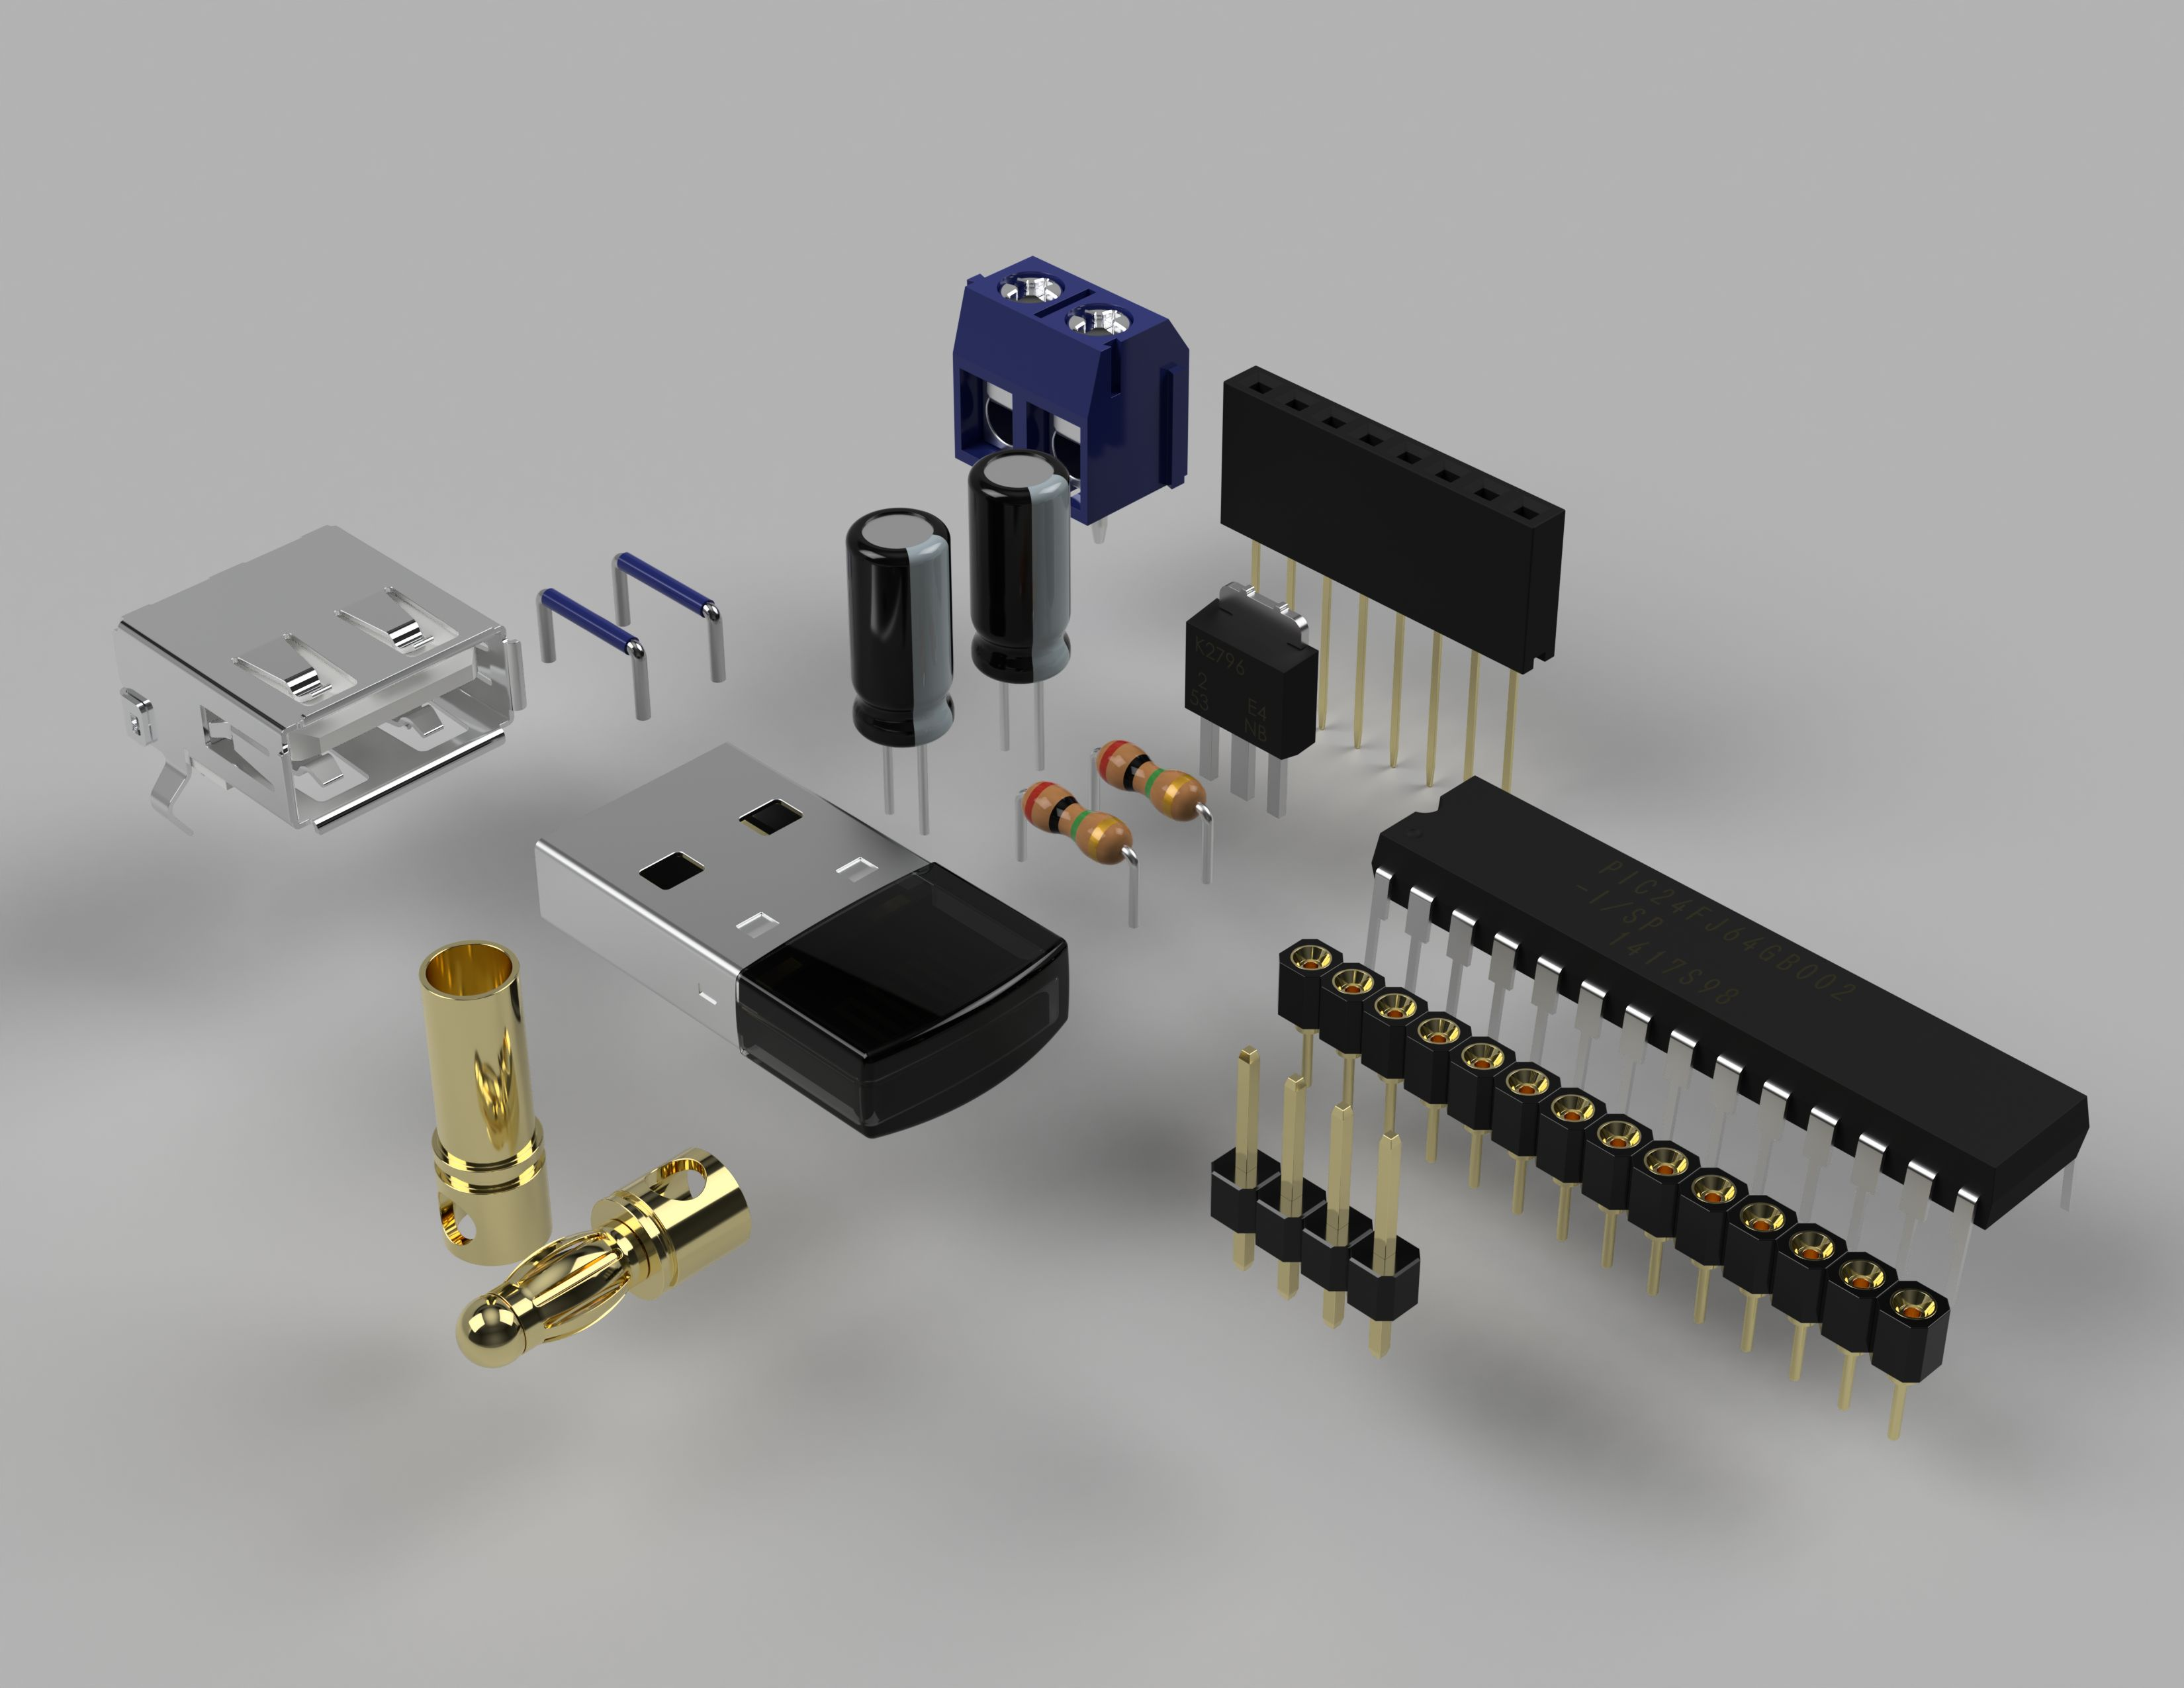 Electronic Component Parts Autodesk Online Gallery Of An Electric Circuit Electroniccomponentparts 1 3500